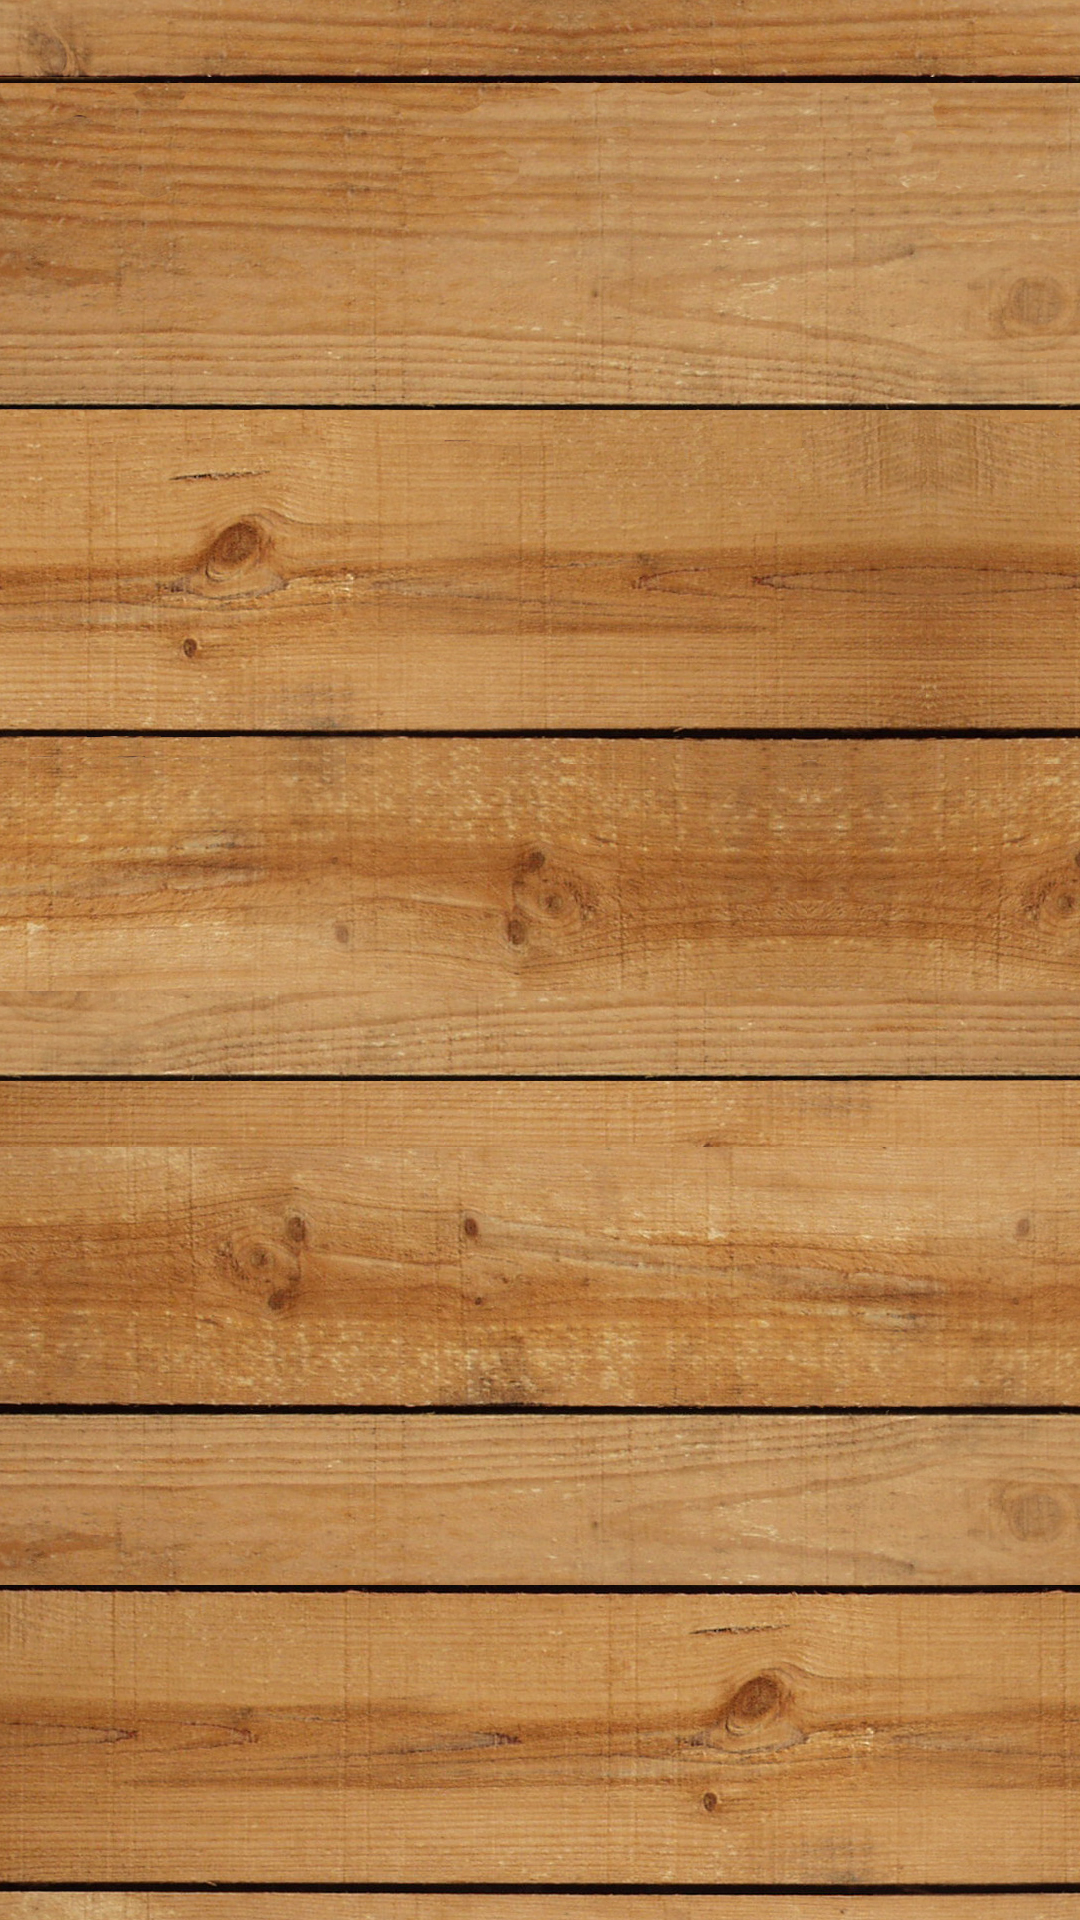 Great Wallpaper Android Wood - 6c948f5181a6e2e12b4ce4bd134572d1  Pic_91255      .png